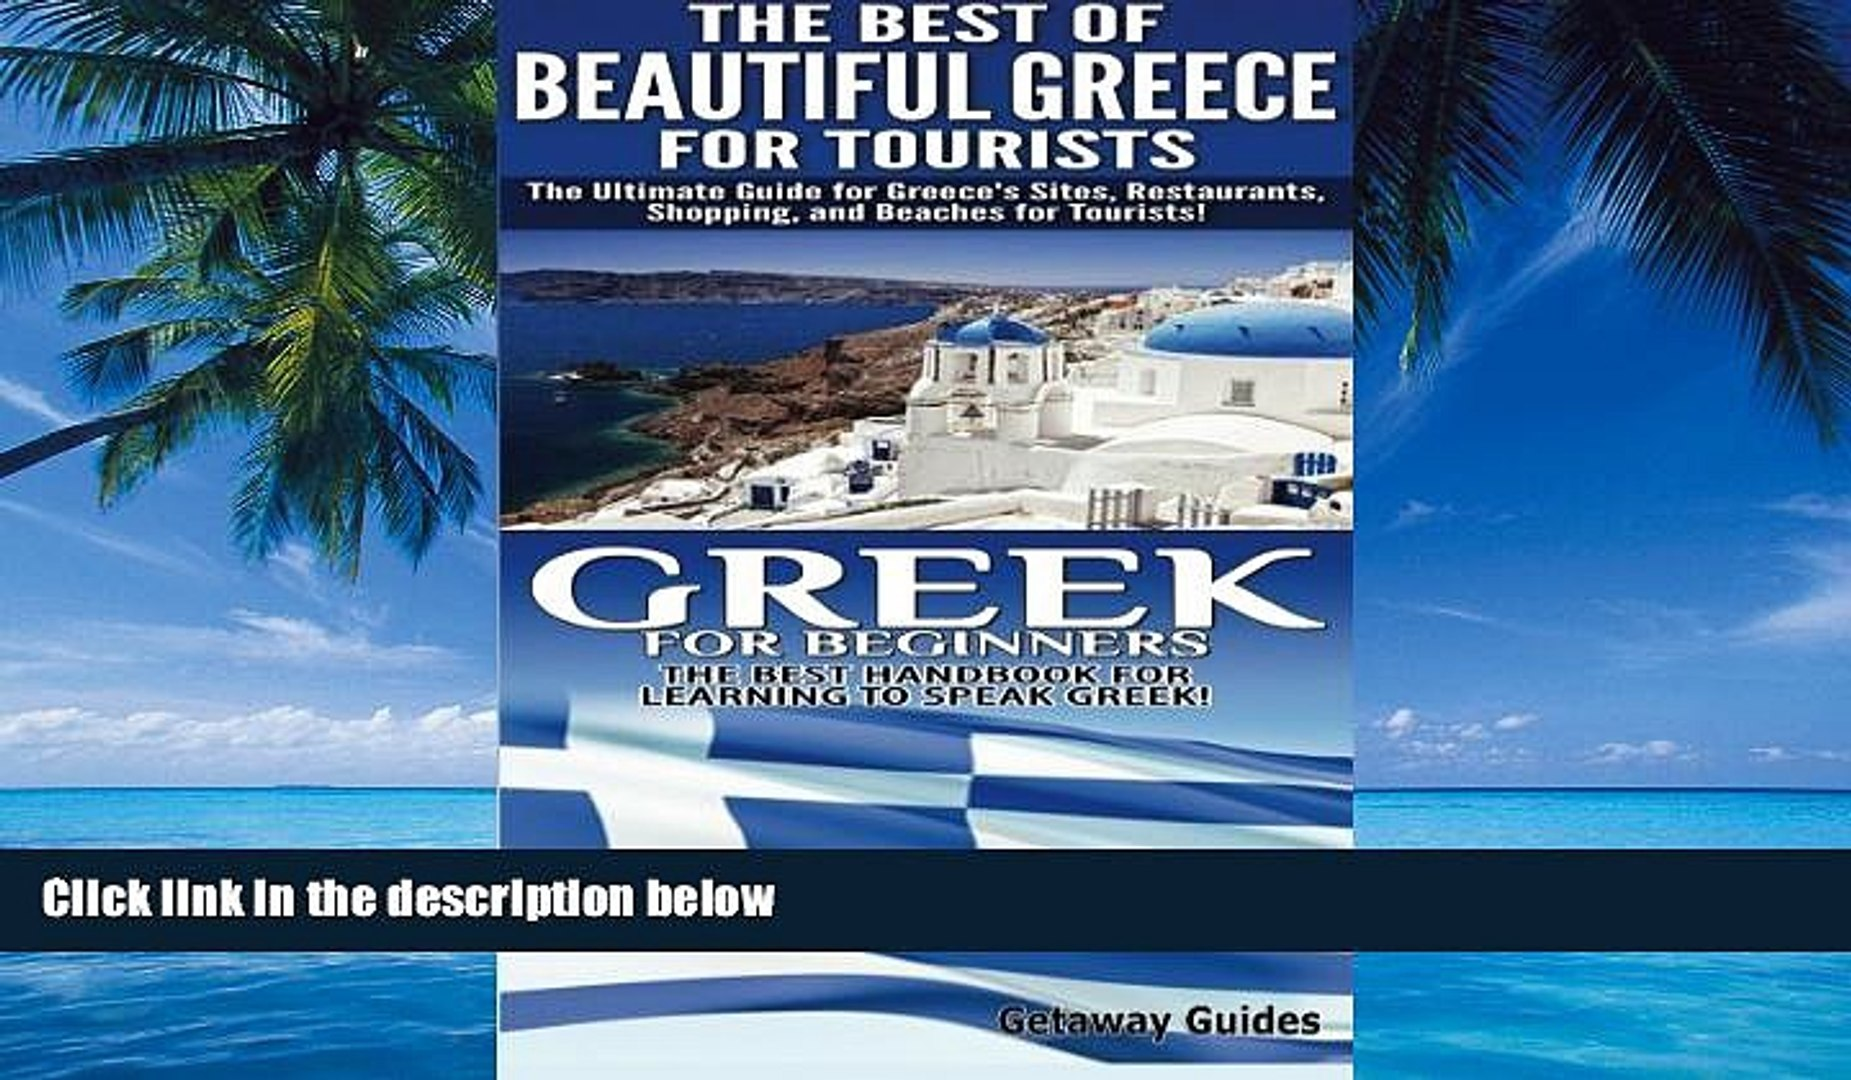 Books to Read  The Best of Beautiful Greece For Tourists   Greek For Beginners (Travel Guide Box